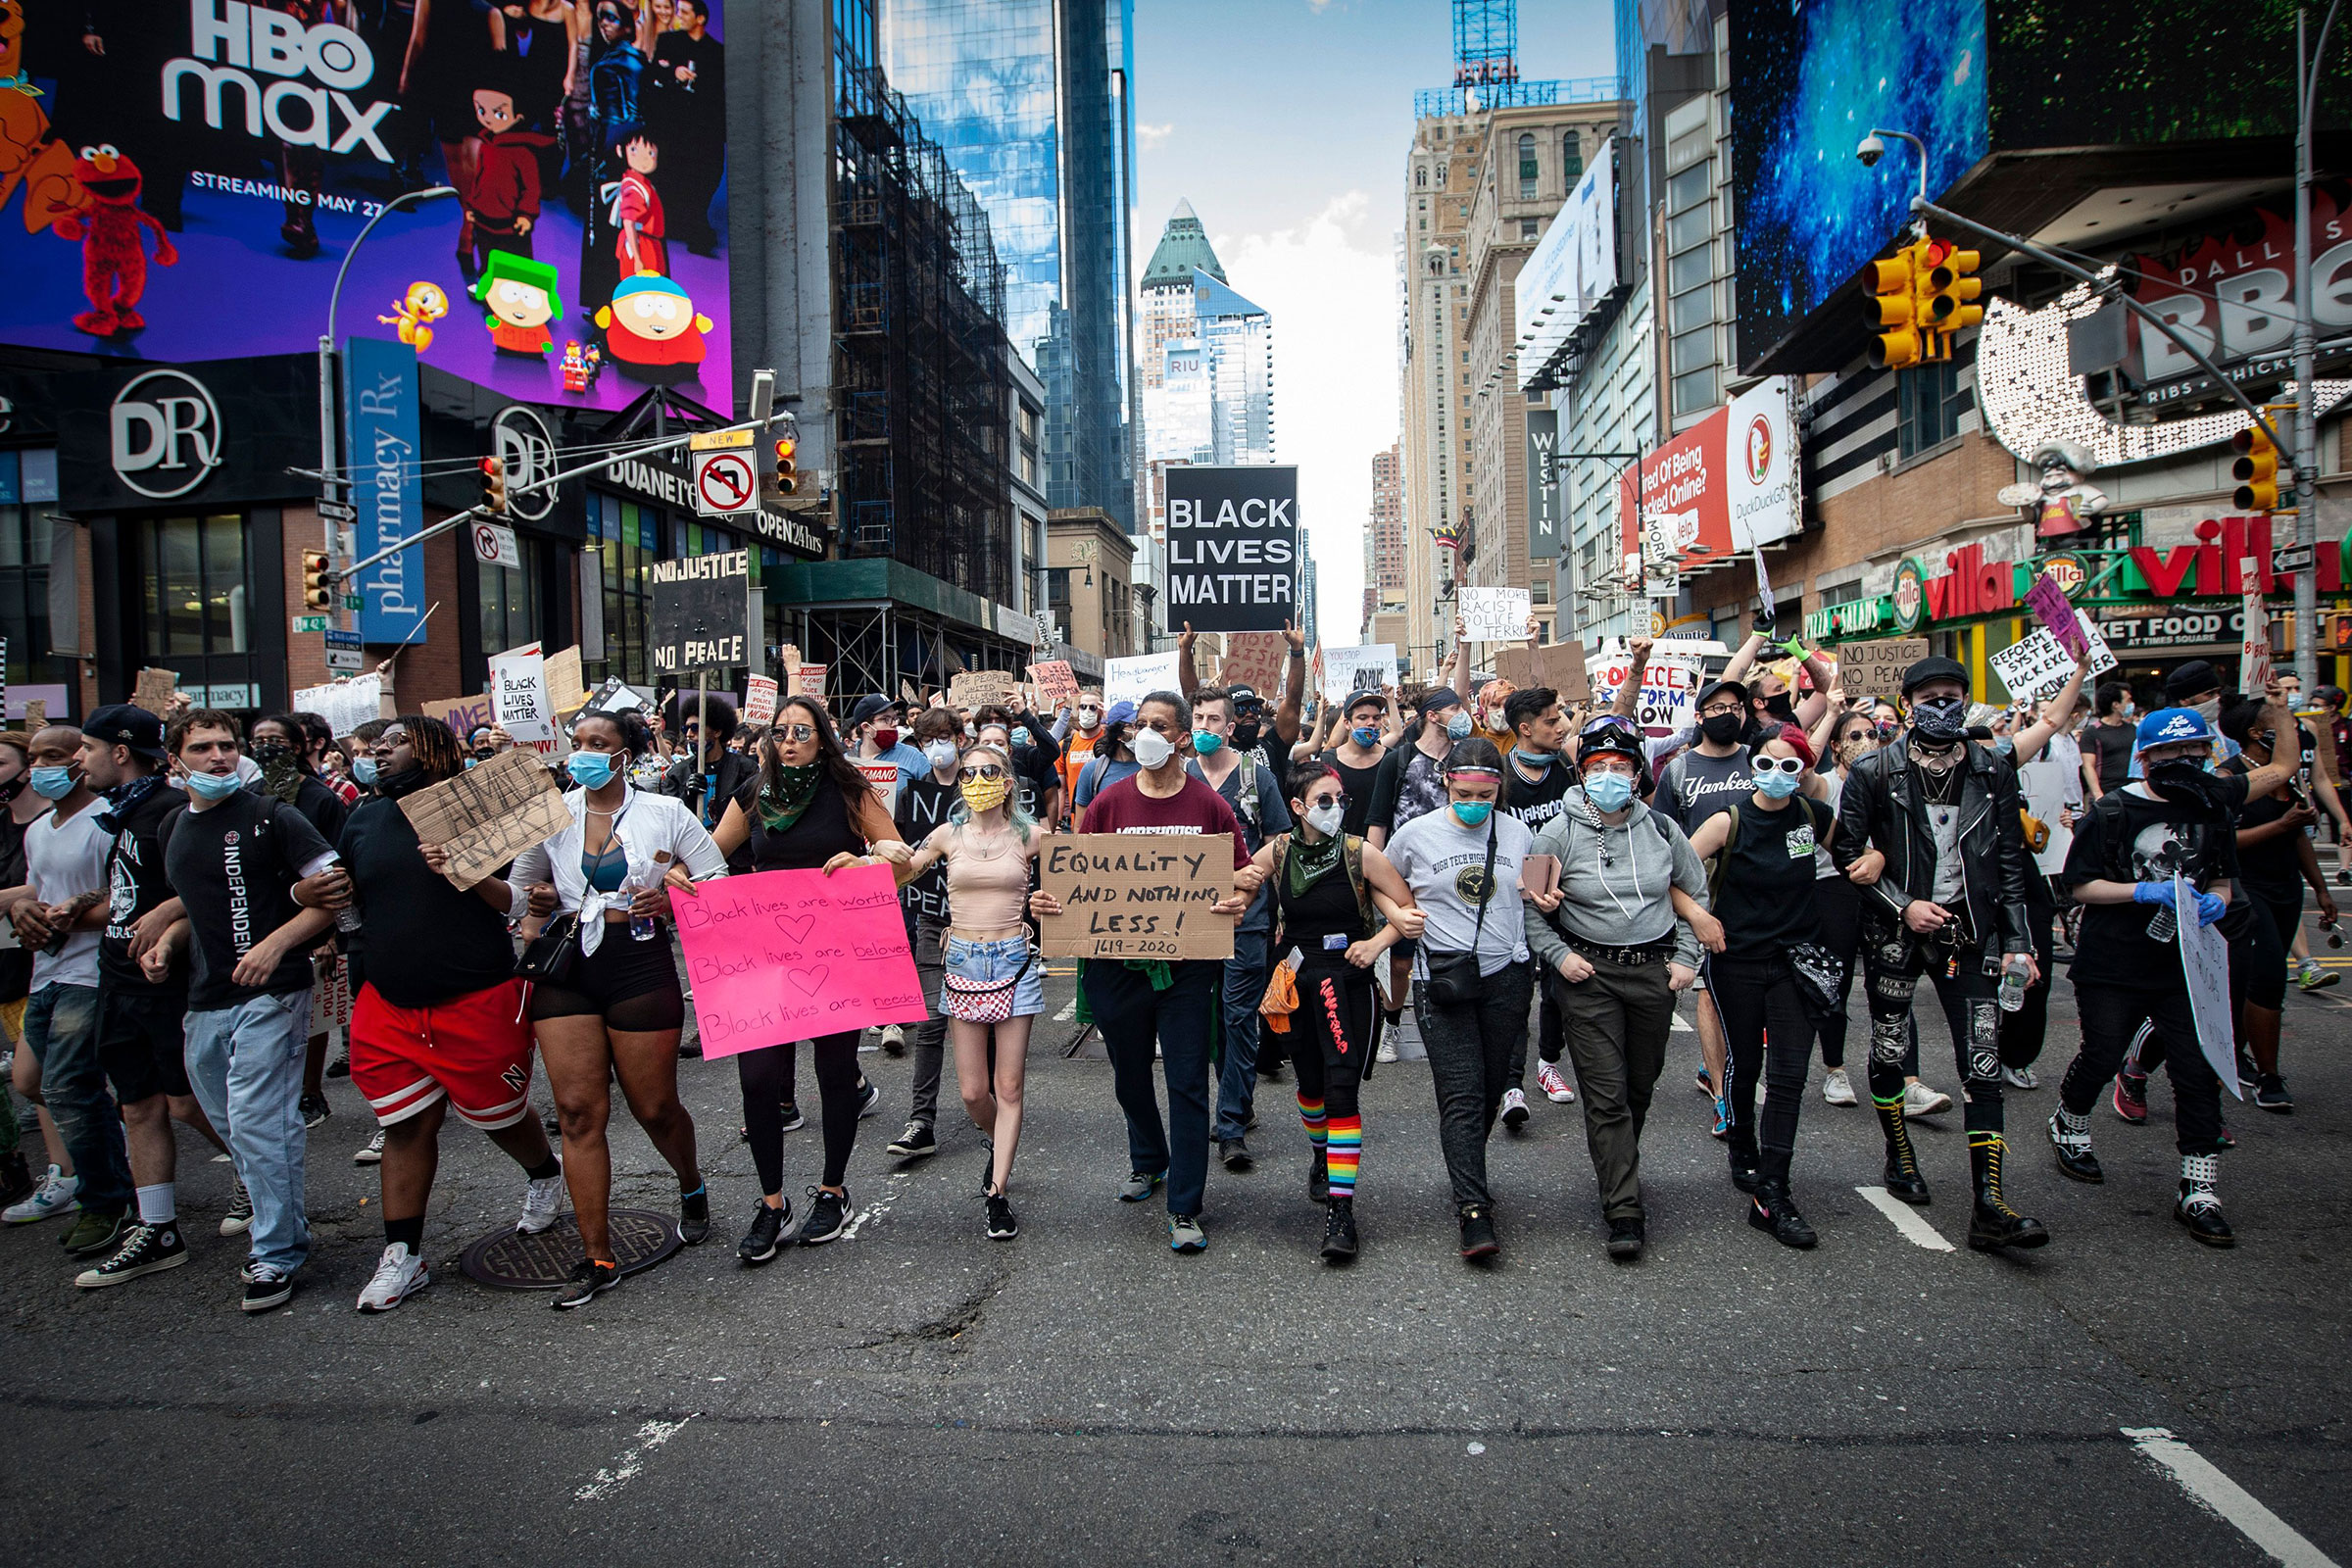 A Black Lives Matter protest march to City Hall in New York City on June 7, 2020.